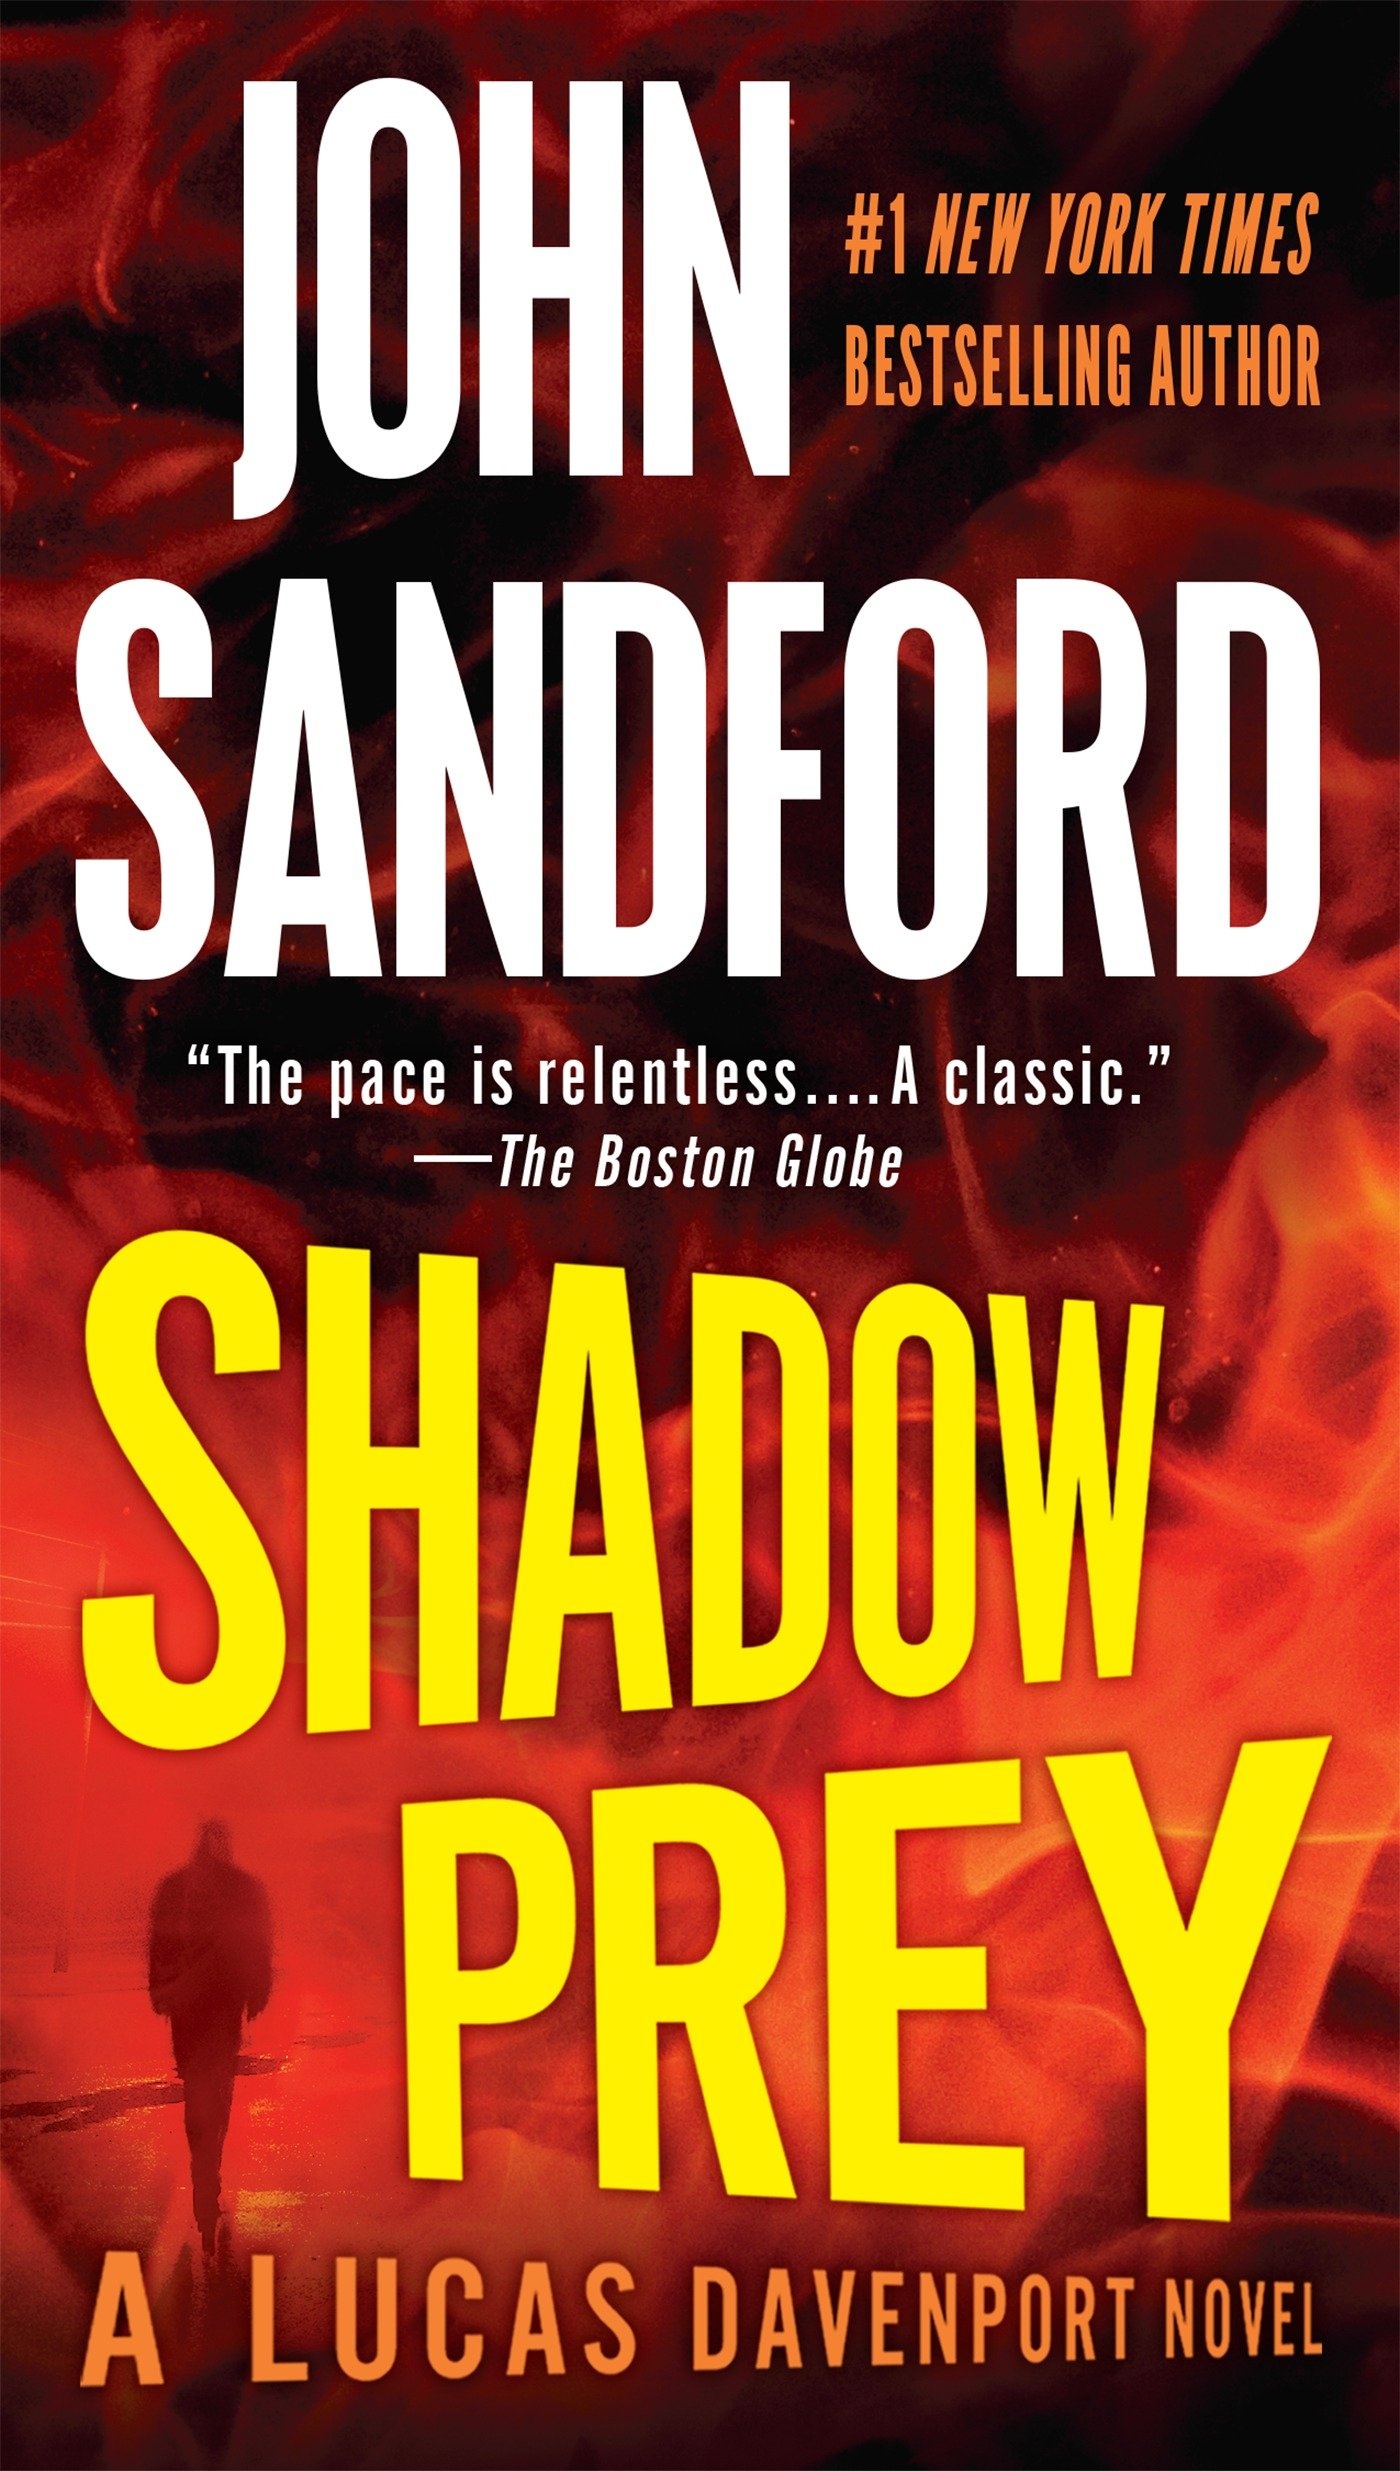 Shadow prey cover image